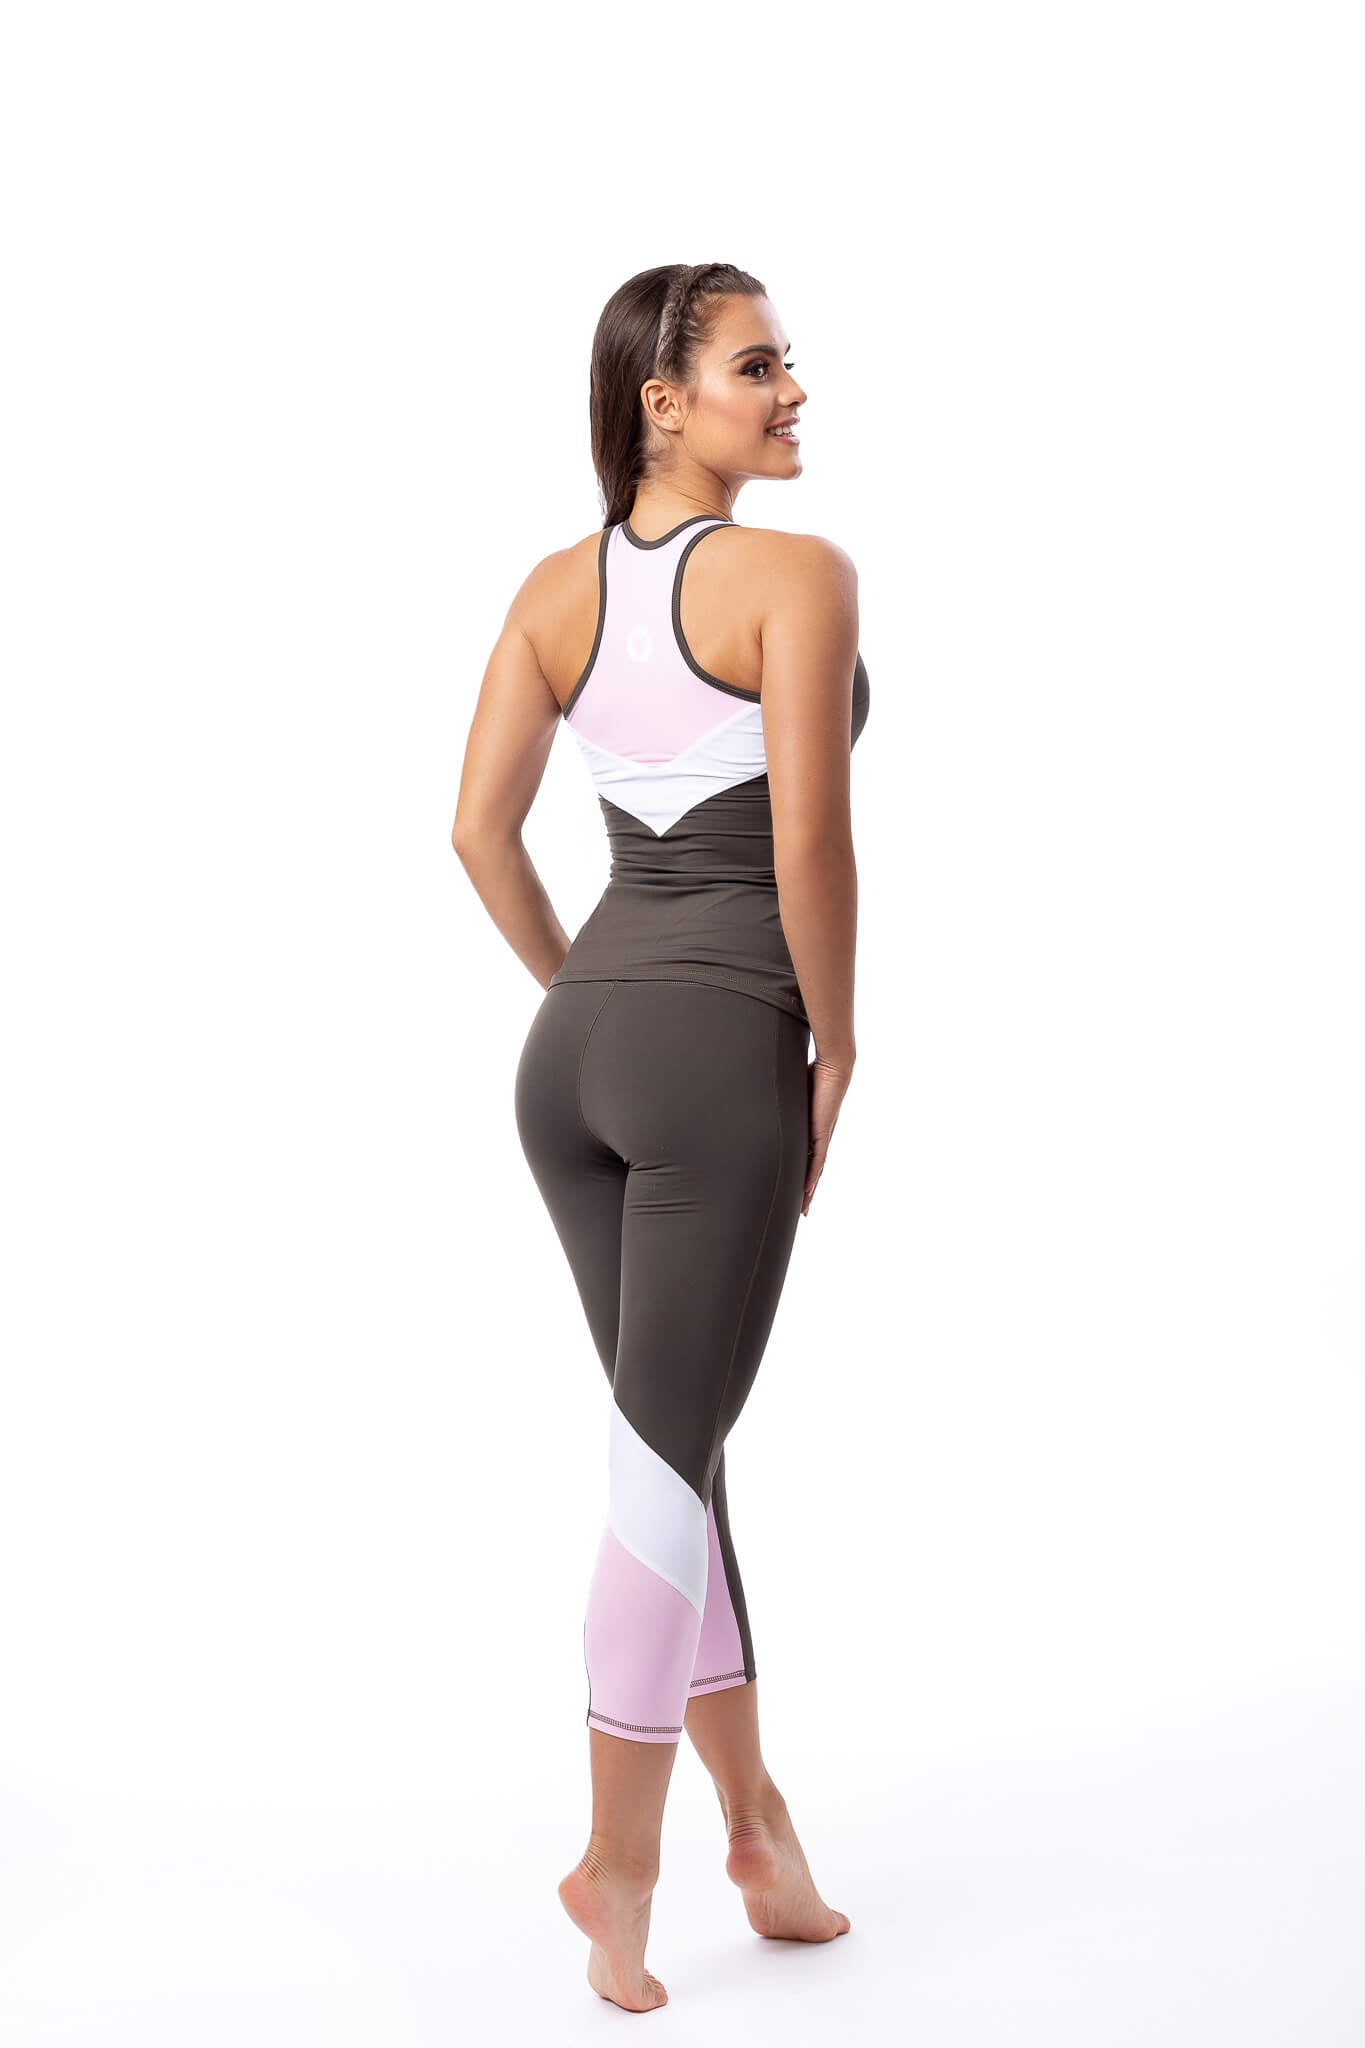 Zipp Fitness Tank Top - BarbellPrincessUsa